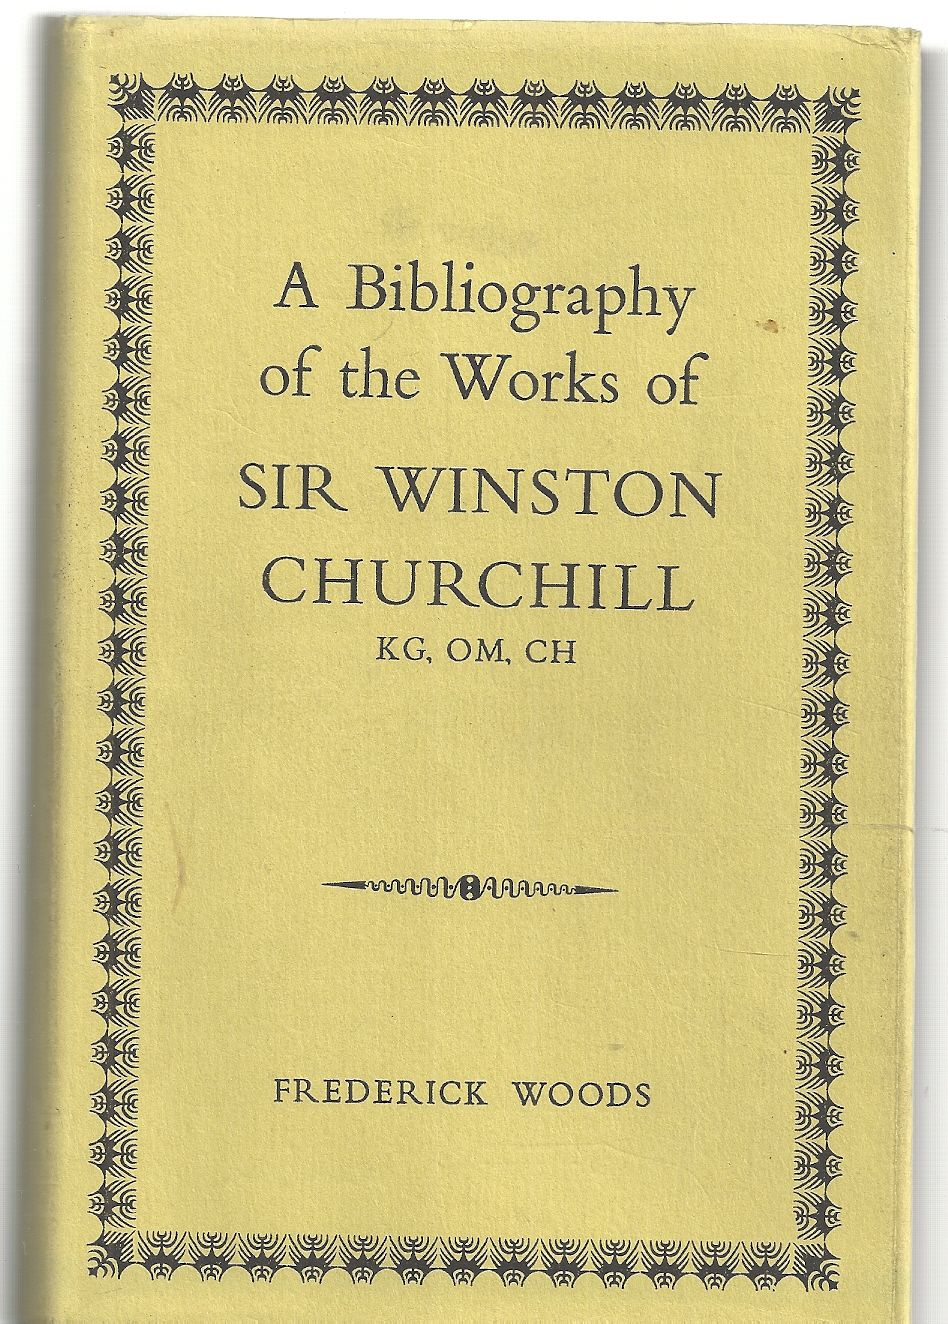 Bibliography of the Works of Sir Winston Churchill